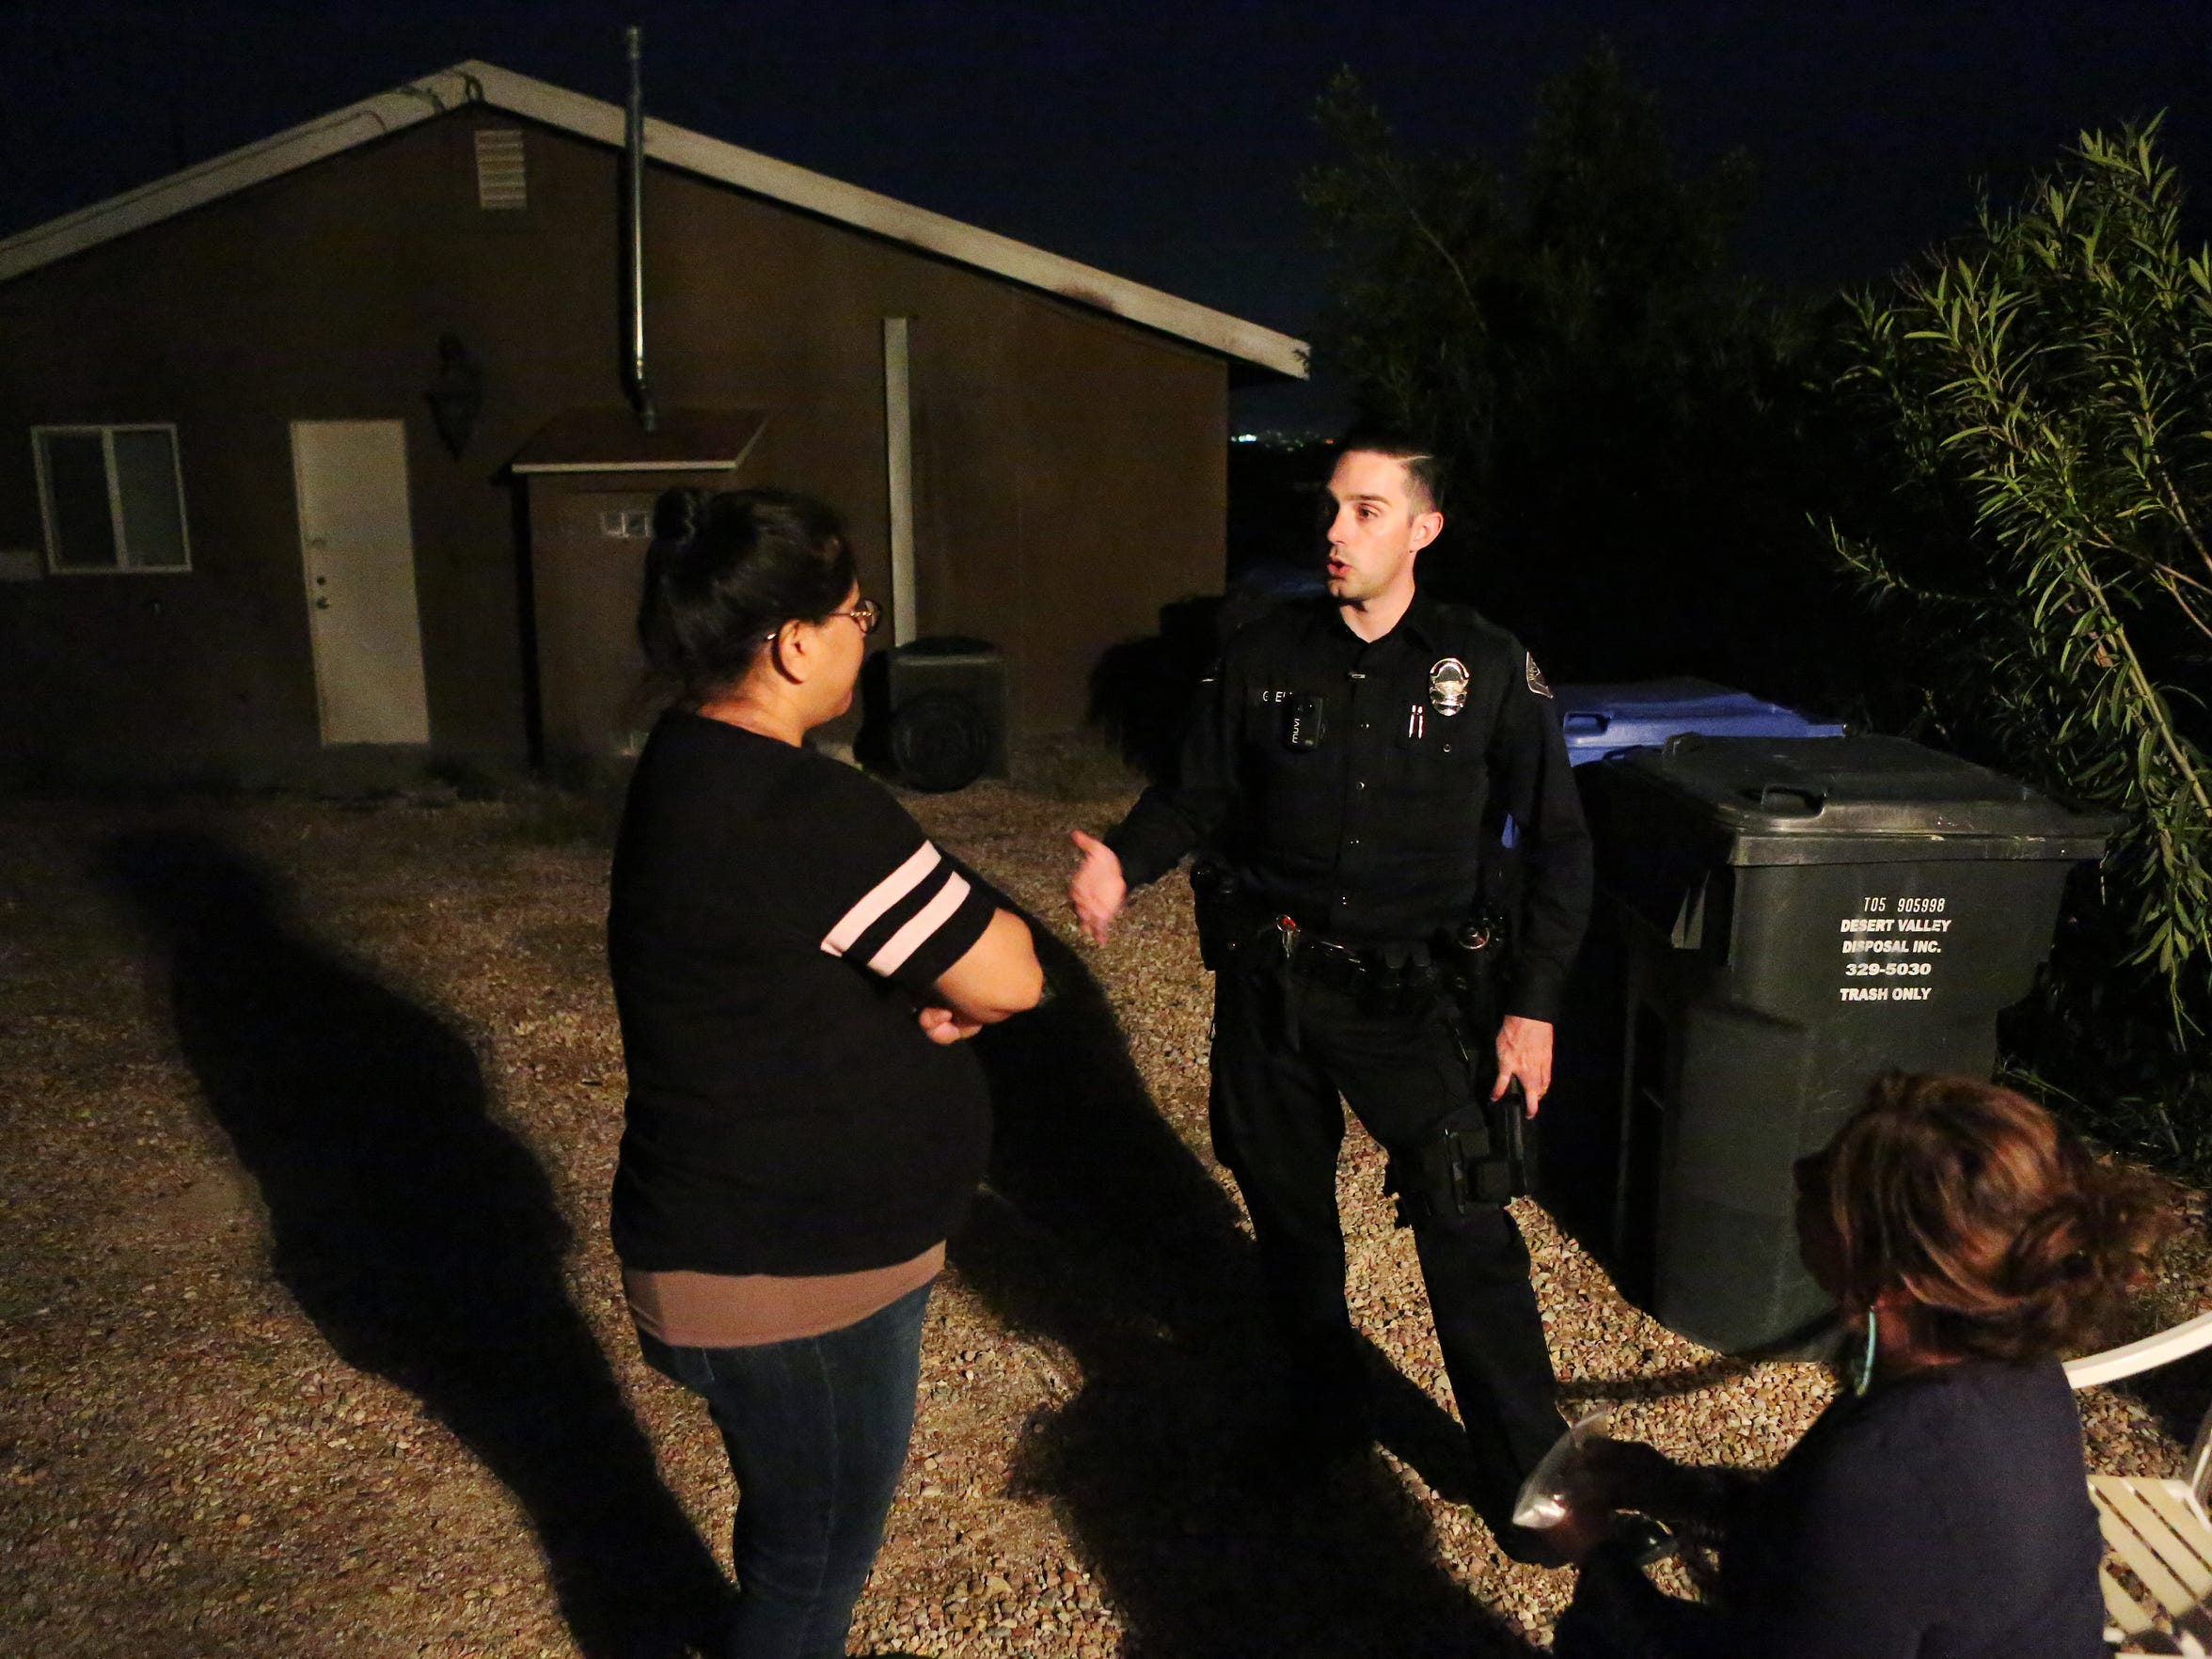 Desert Hot Springs officer Greg Elias tries to convince a woman to file a report on her husband attacking her, after her daughter made a 911 call.